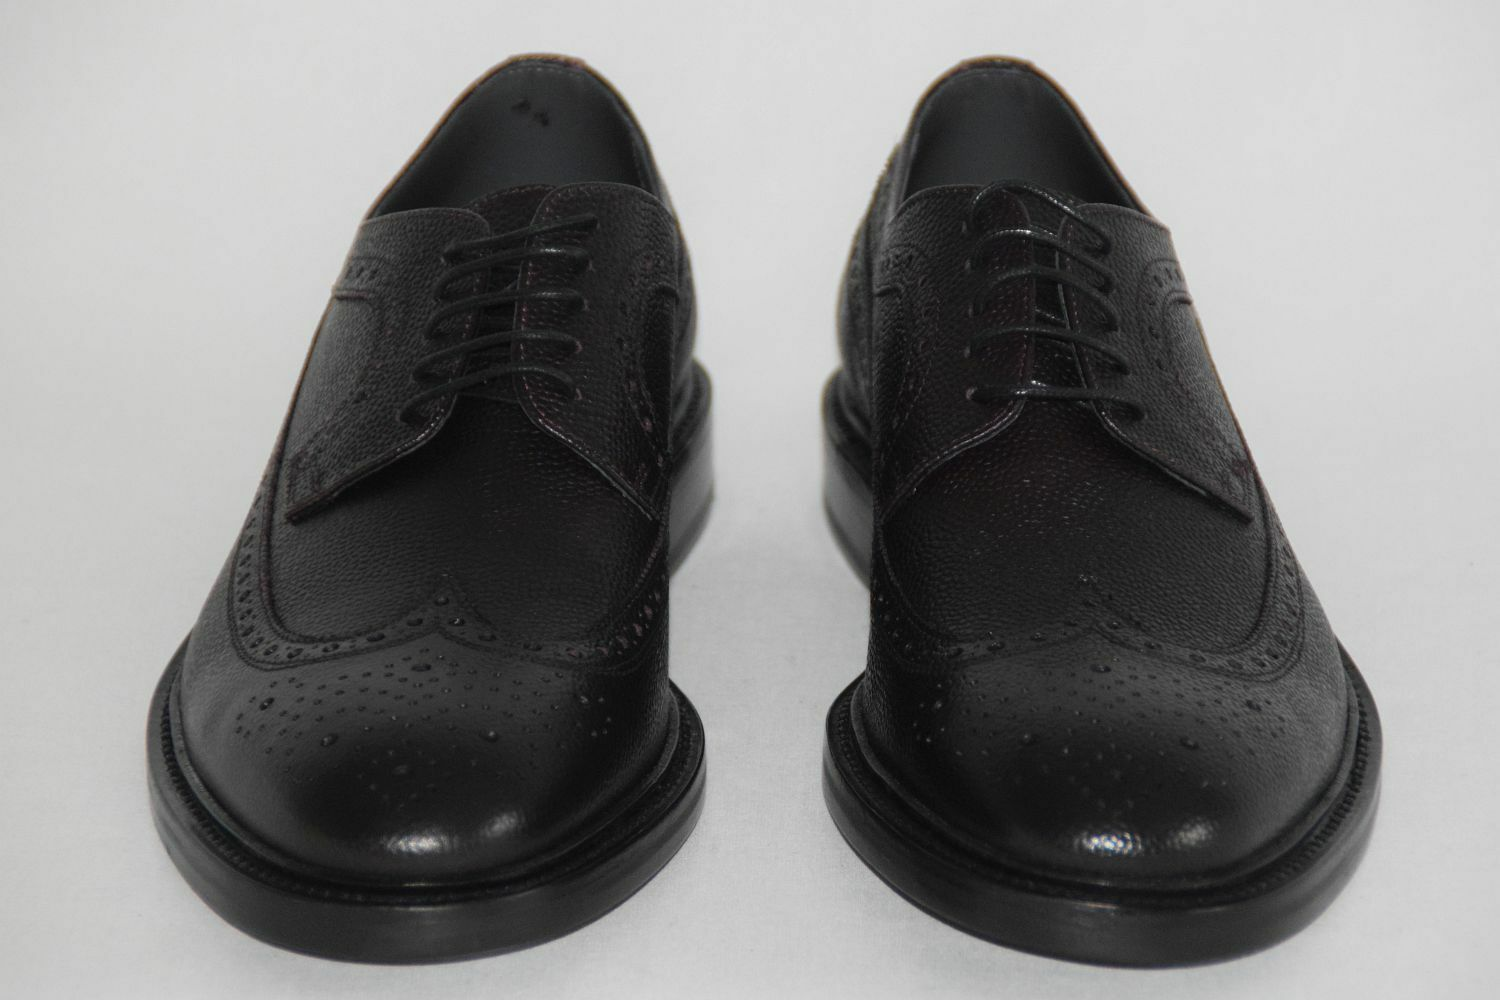 HUGO BOSS BUSINESSSCHUHE, Gr.  43 / UK 9,  Gr.  , Made in , Dark ROT de934a